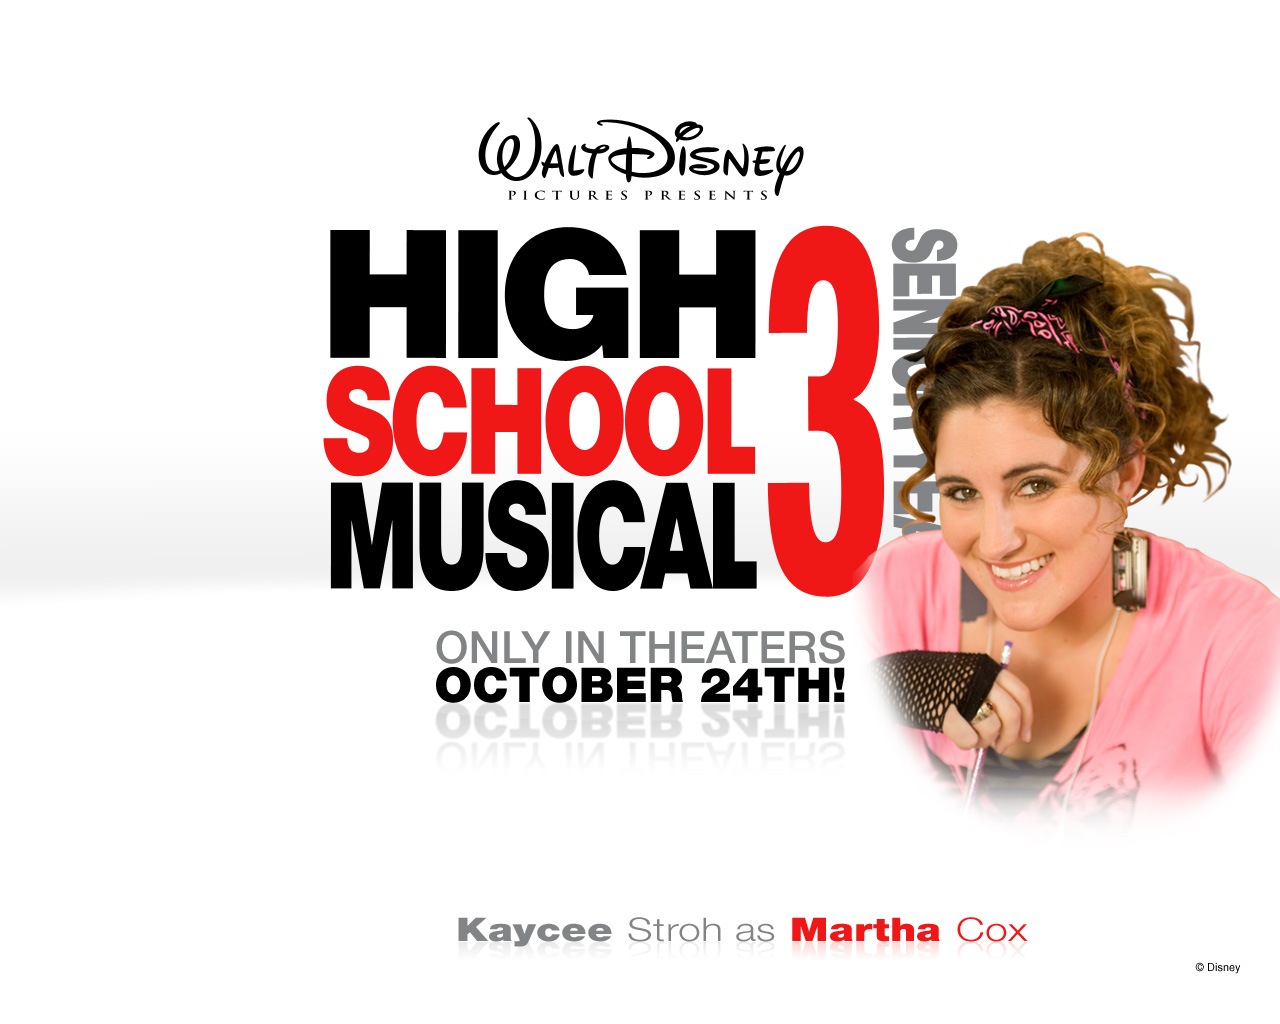 Kaycee Stroh High School Musical 3 1280x1024